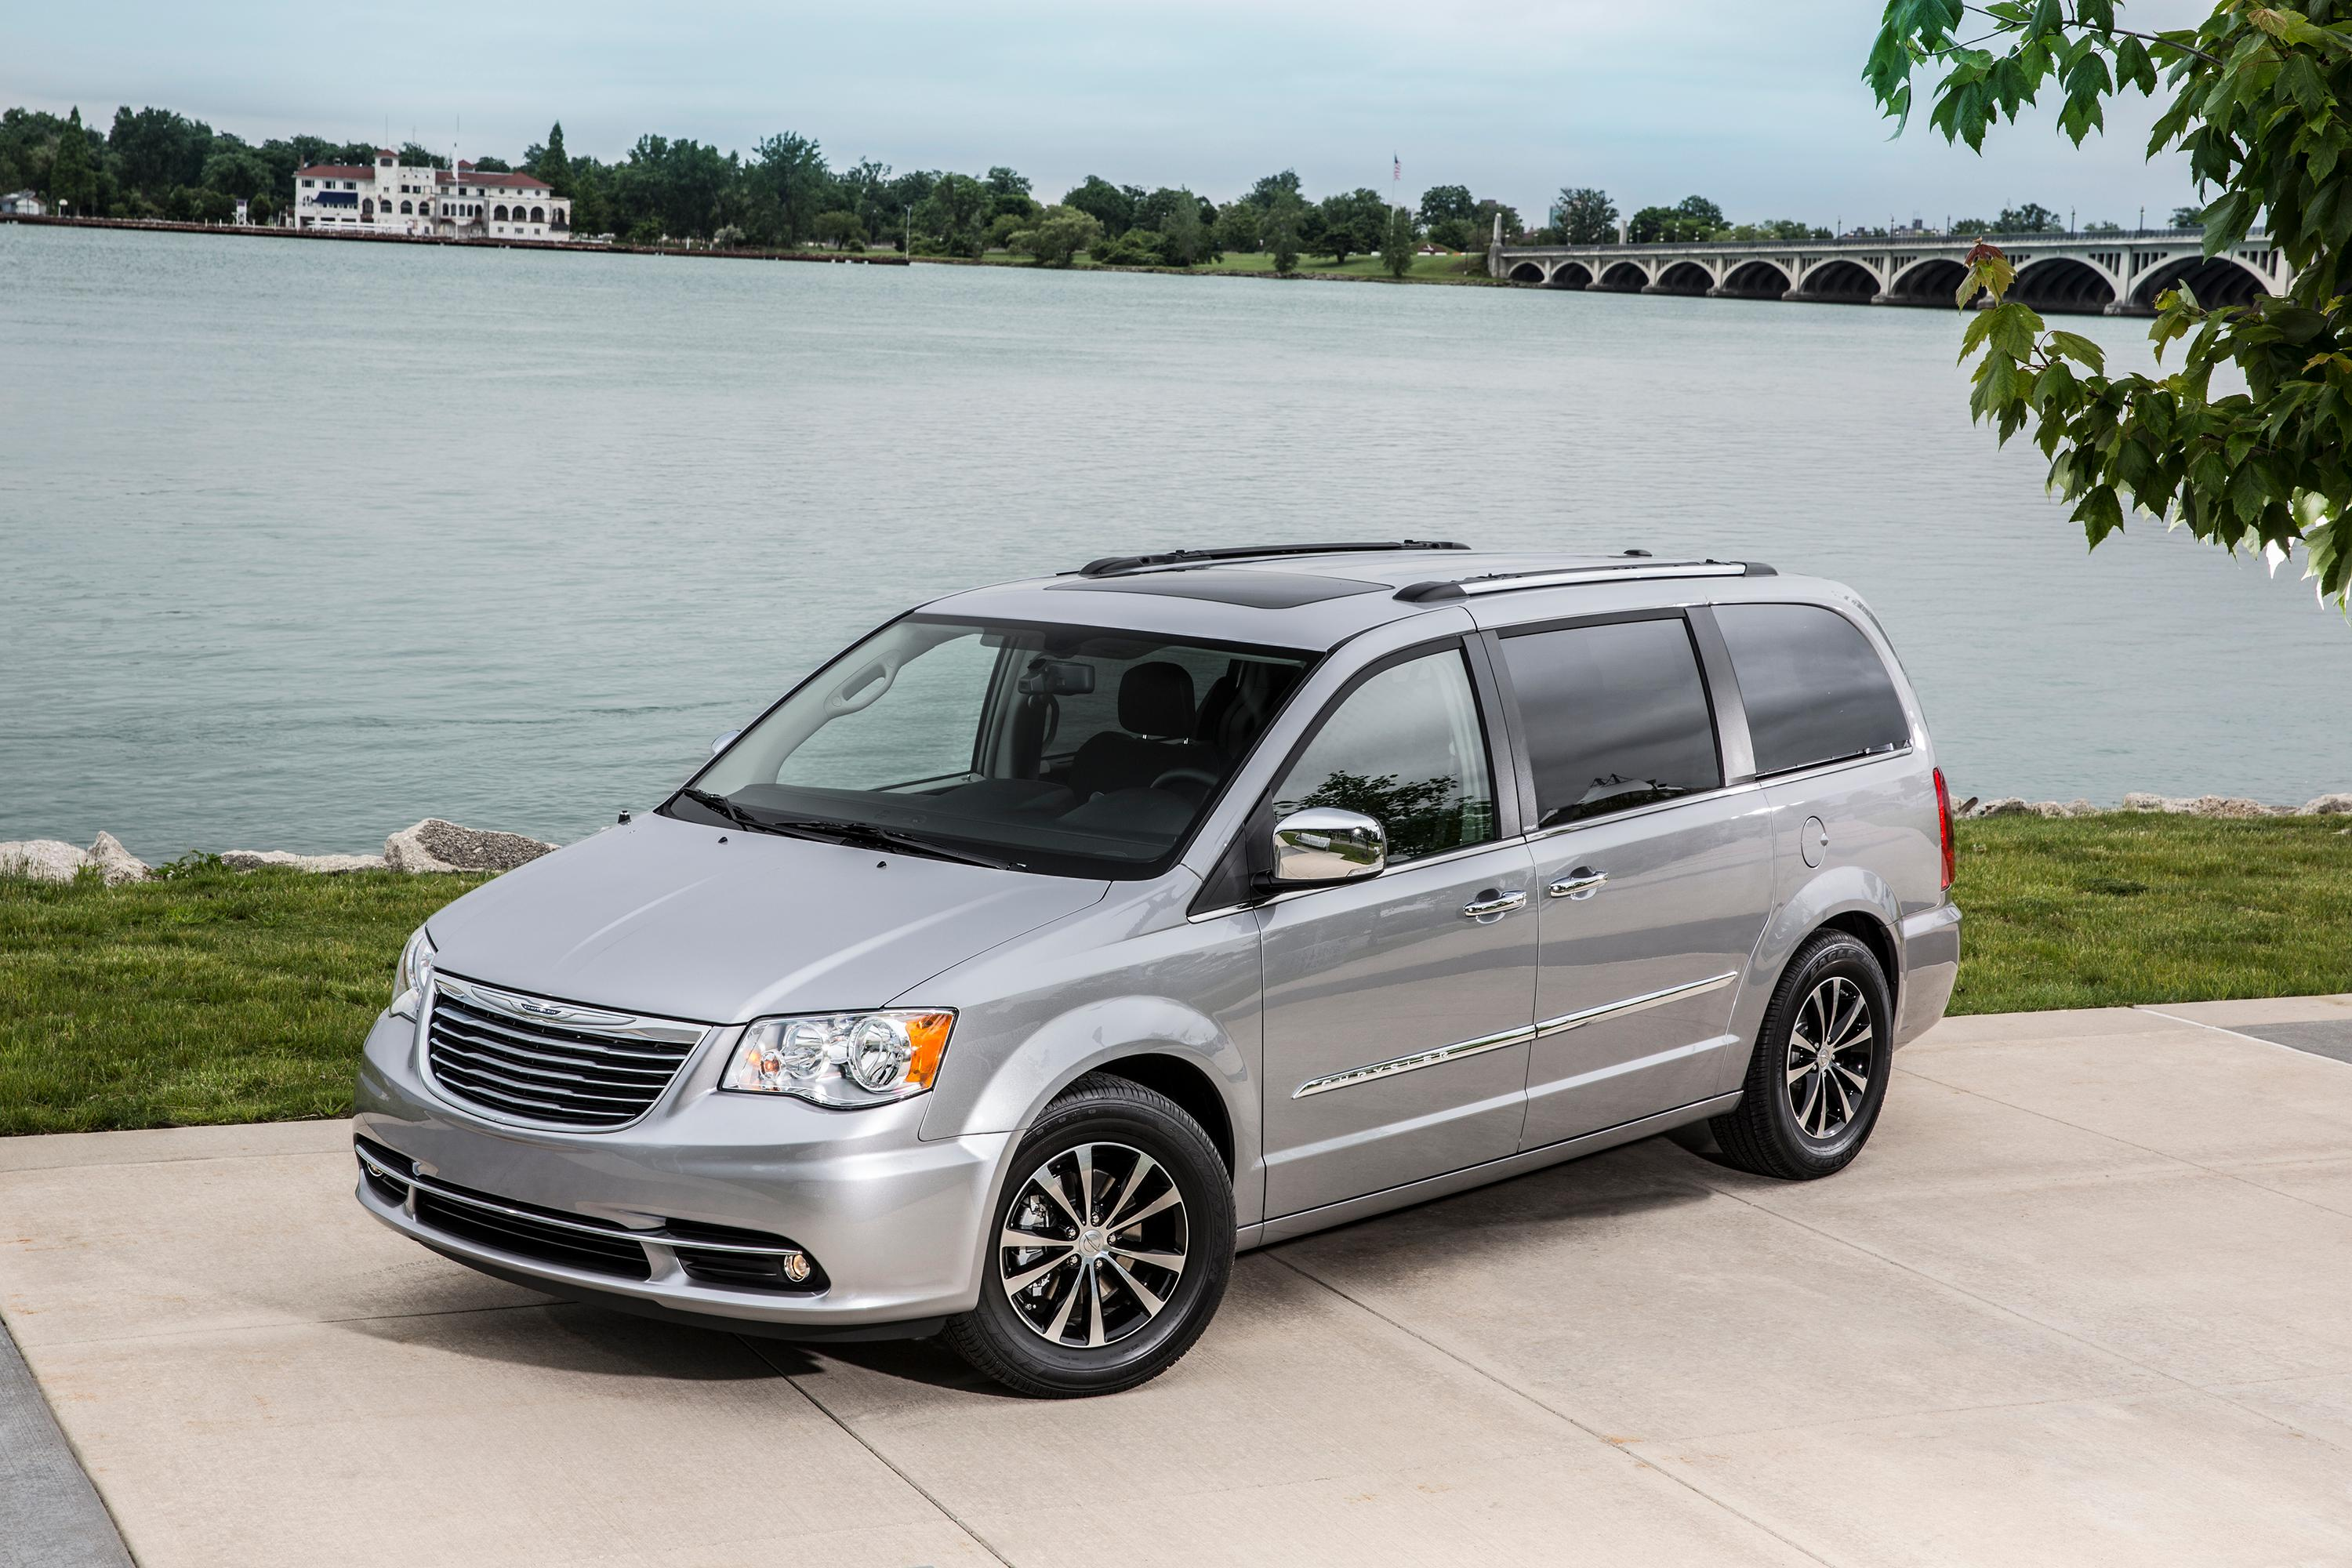 used img touring in inventory chrysler vehicle country town en berwick